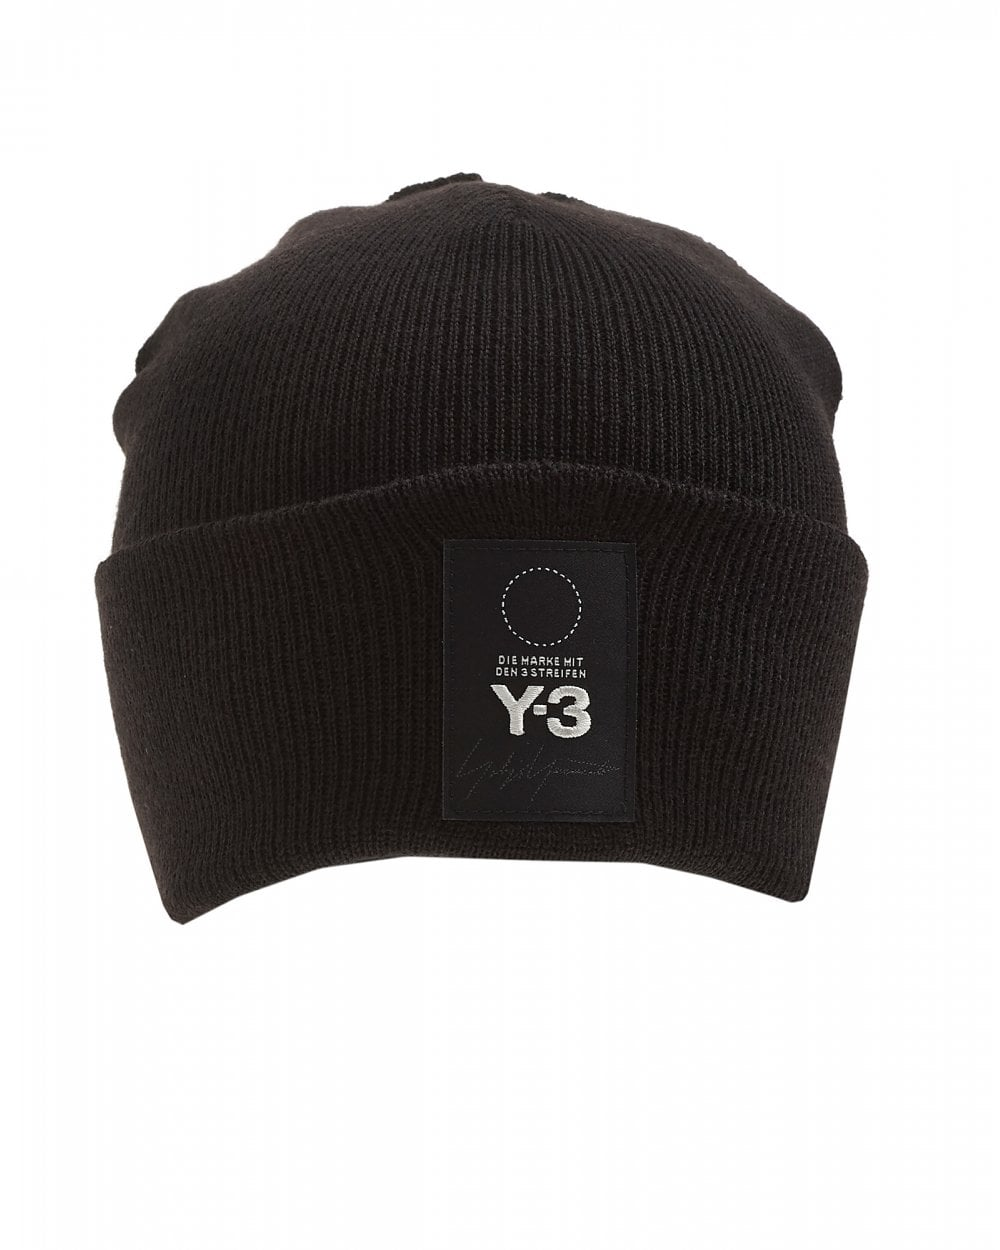 99d4e8f9f Mens Patch Logo Beanie, Black Ribbed Hat